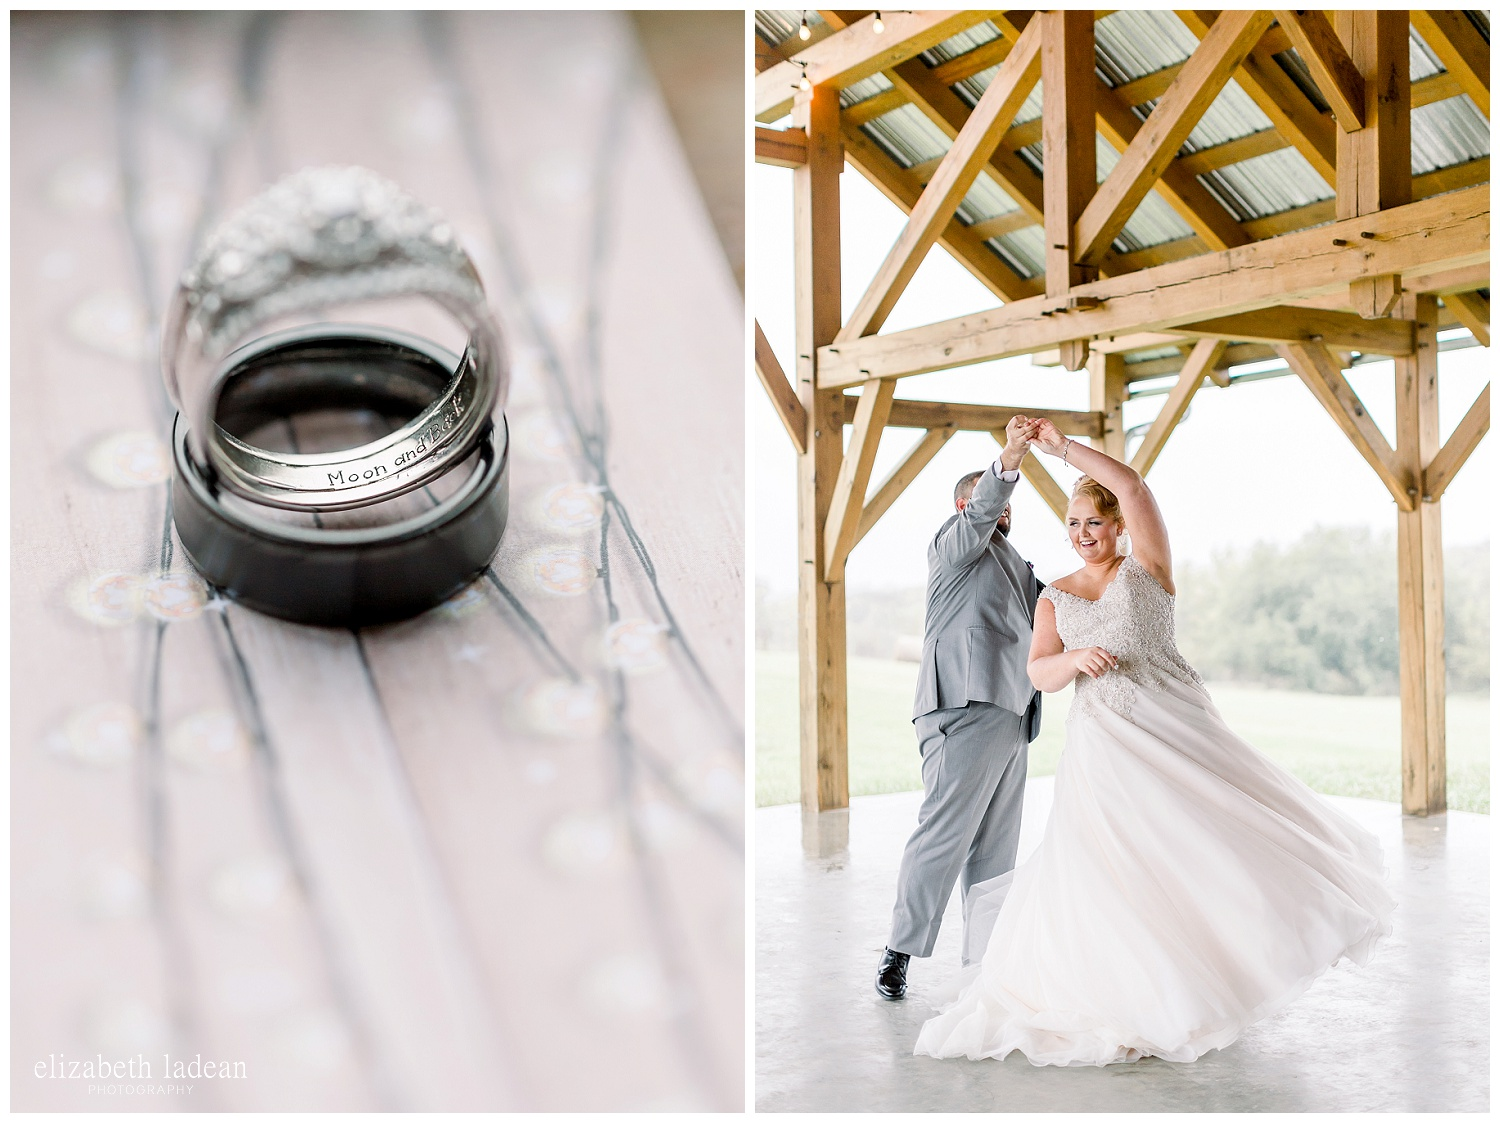 Weston-Timber-Barn-Wedding-Photography-L+A-elizabeth-ladean0photo_1864.jpg